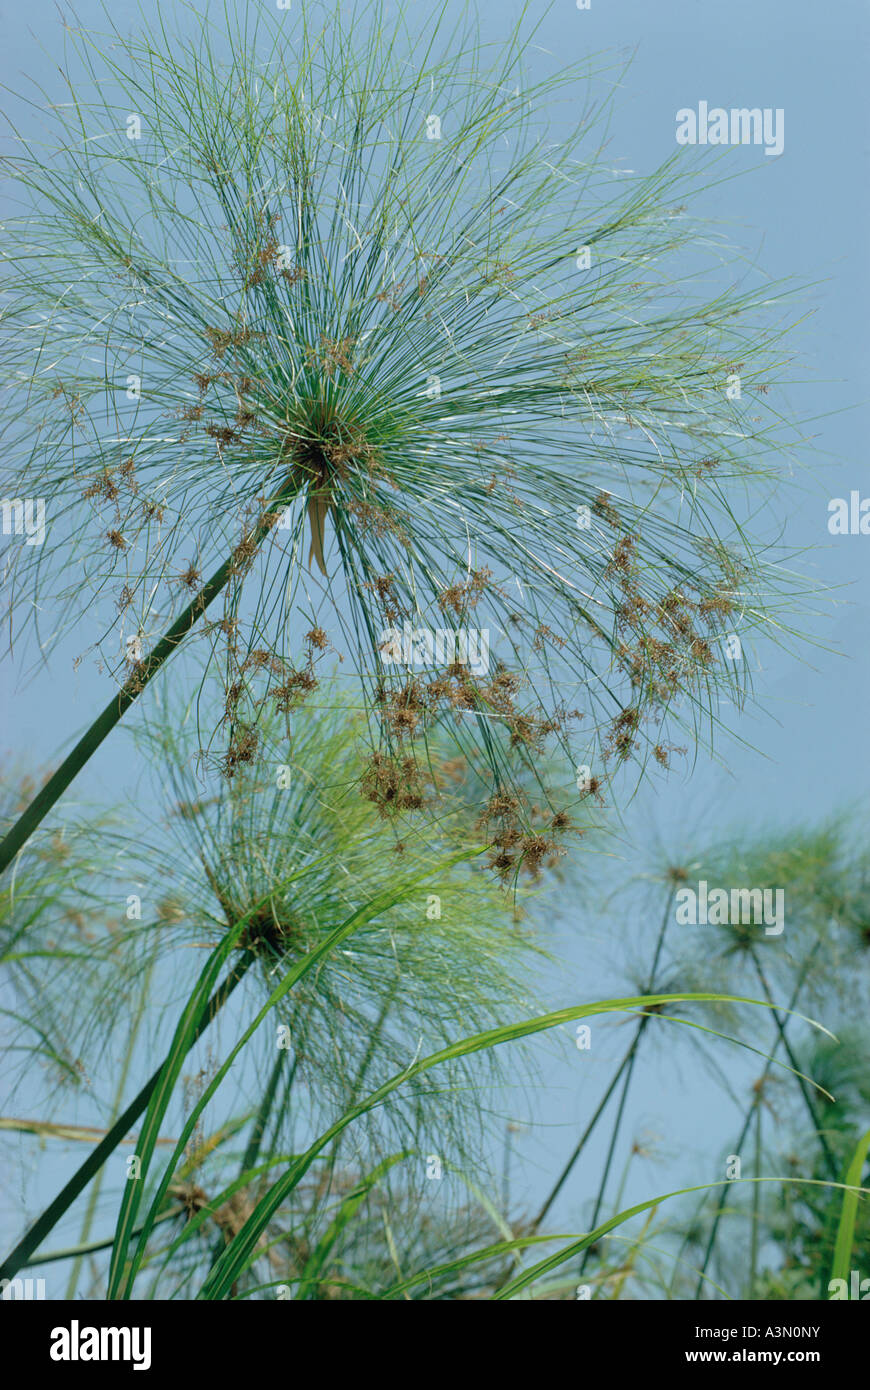 Cyperus papyrus of Cyperaceae family lake side and marshes of Islands of Lake Chad Chad Africa - Stock Image